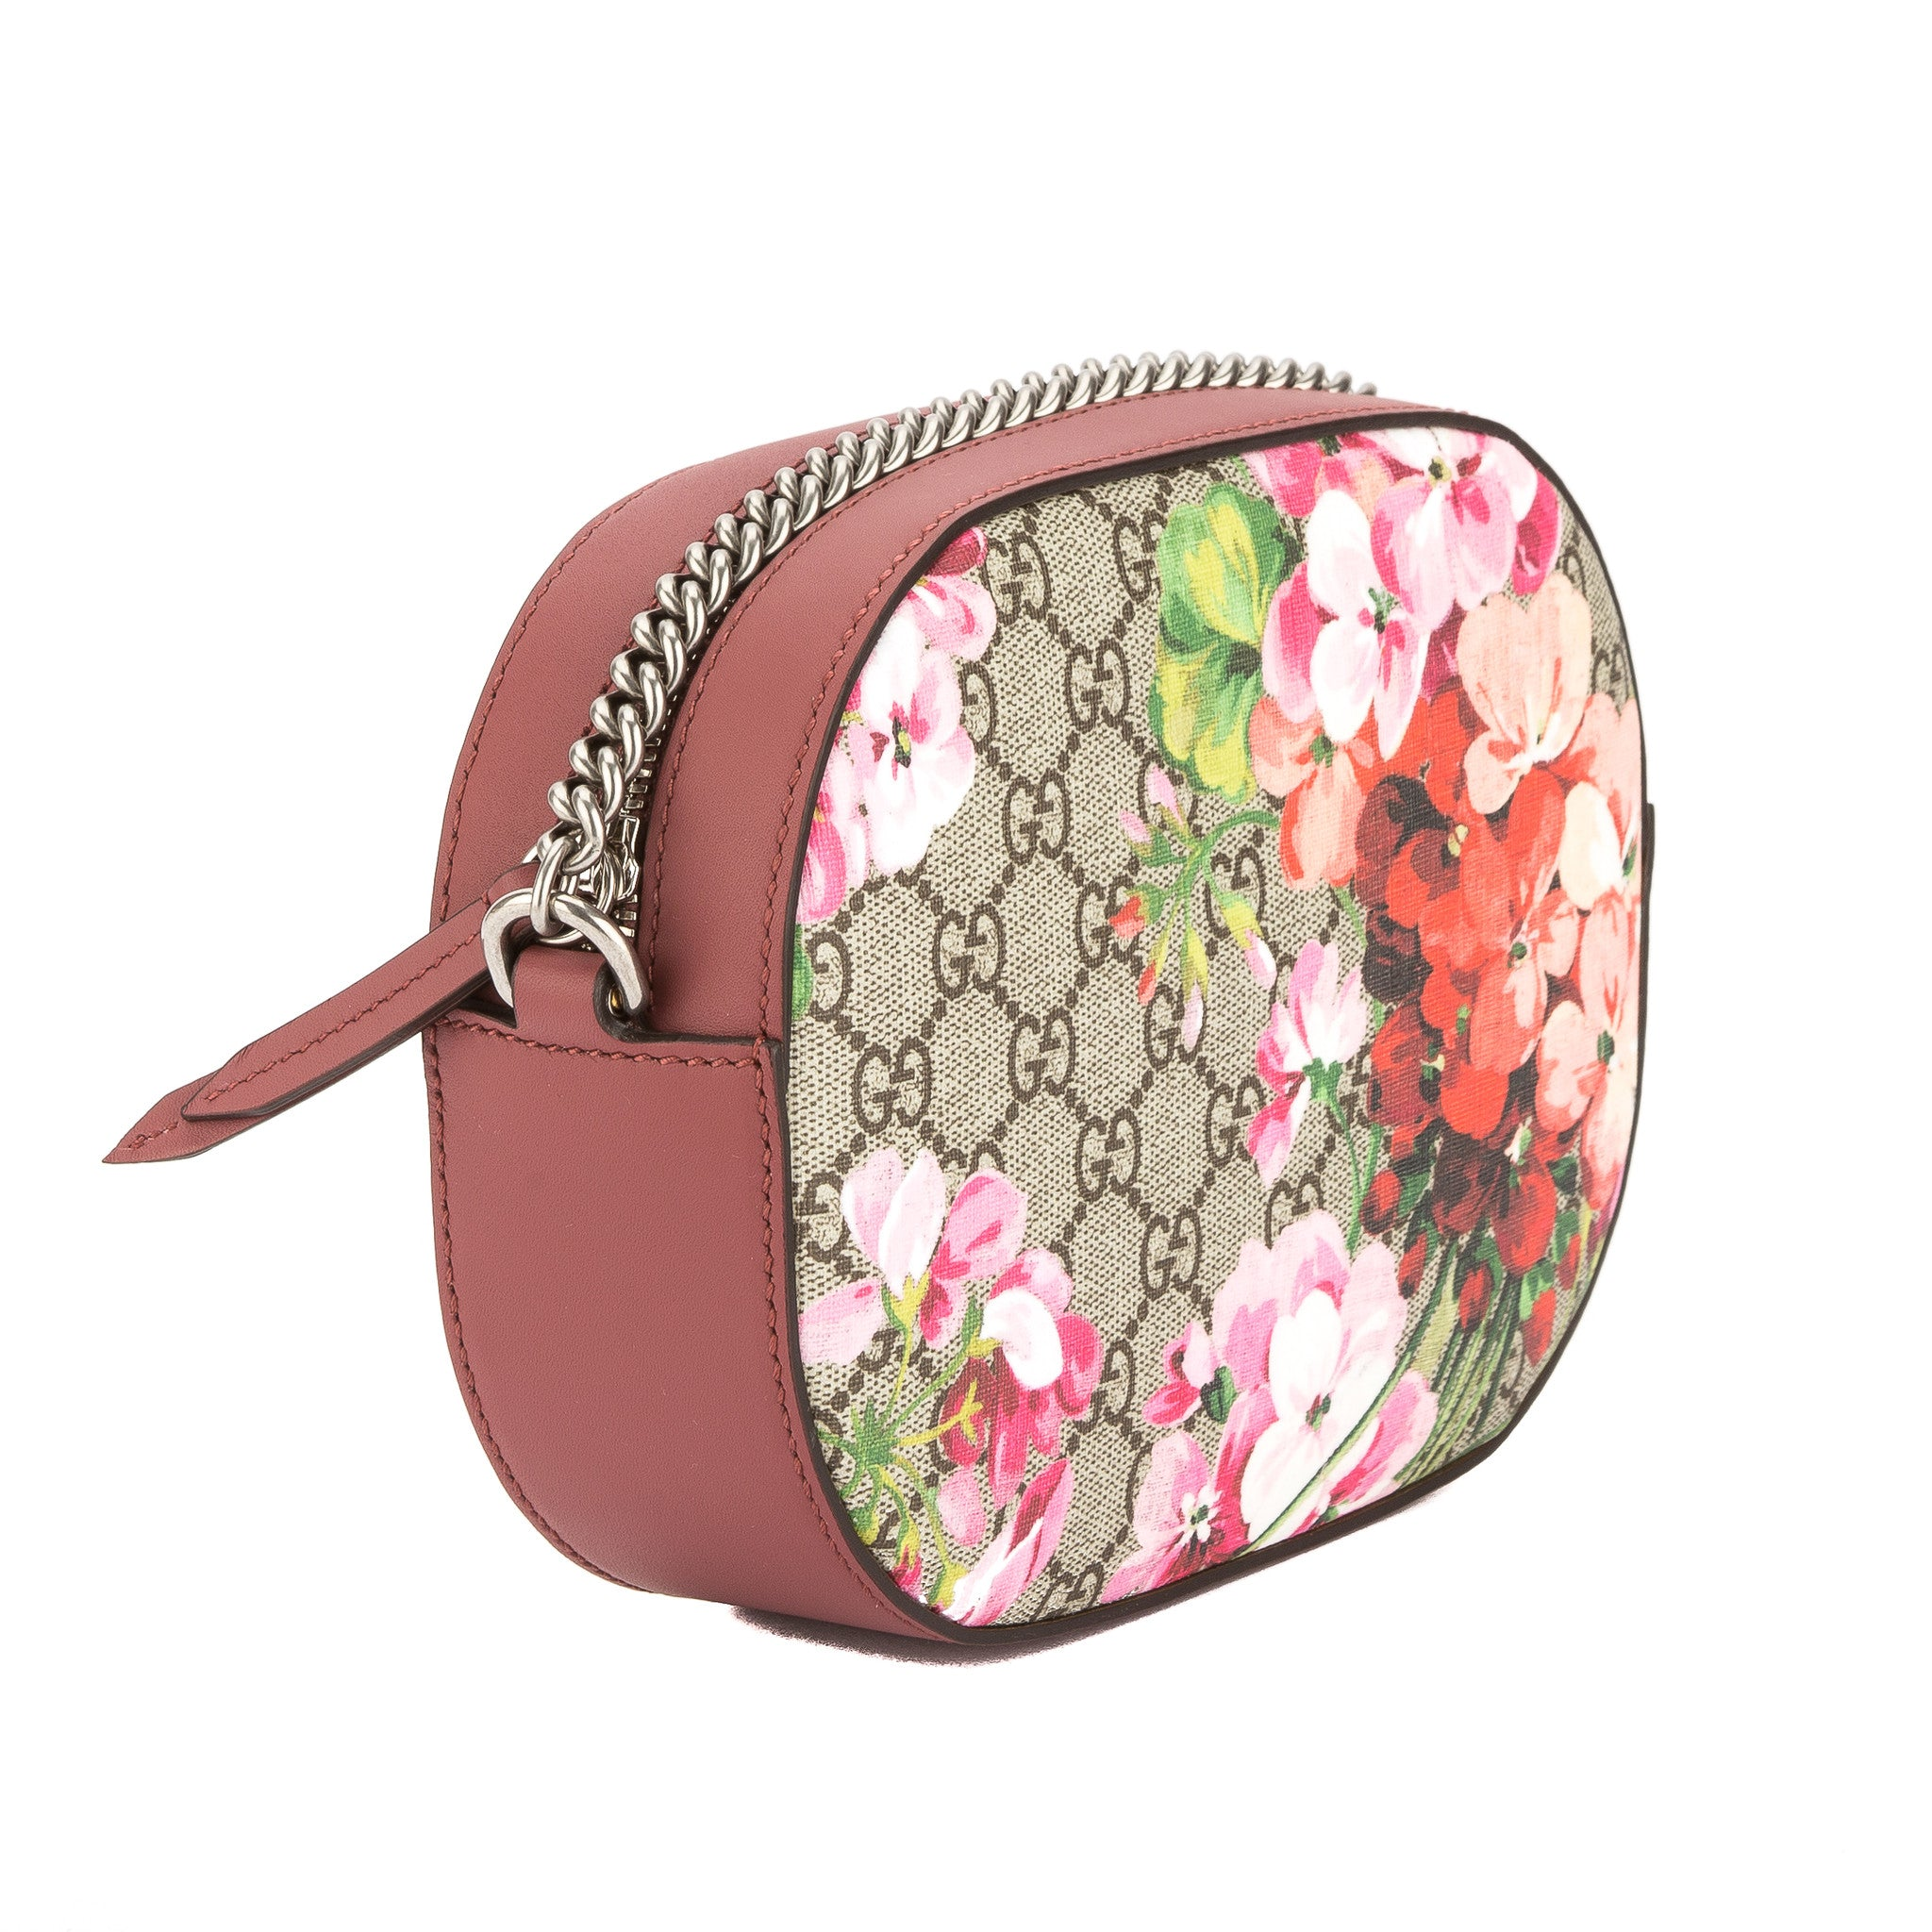 efa08bbdb58 Gucci Antique Rose Leather Blooms GG Supreme Mini Chain Bag (New with -  3497004